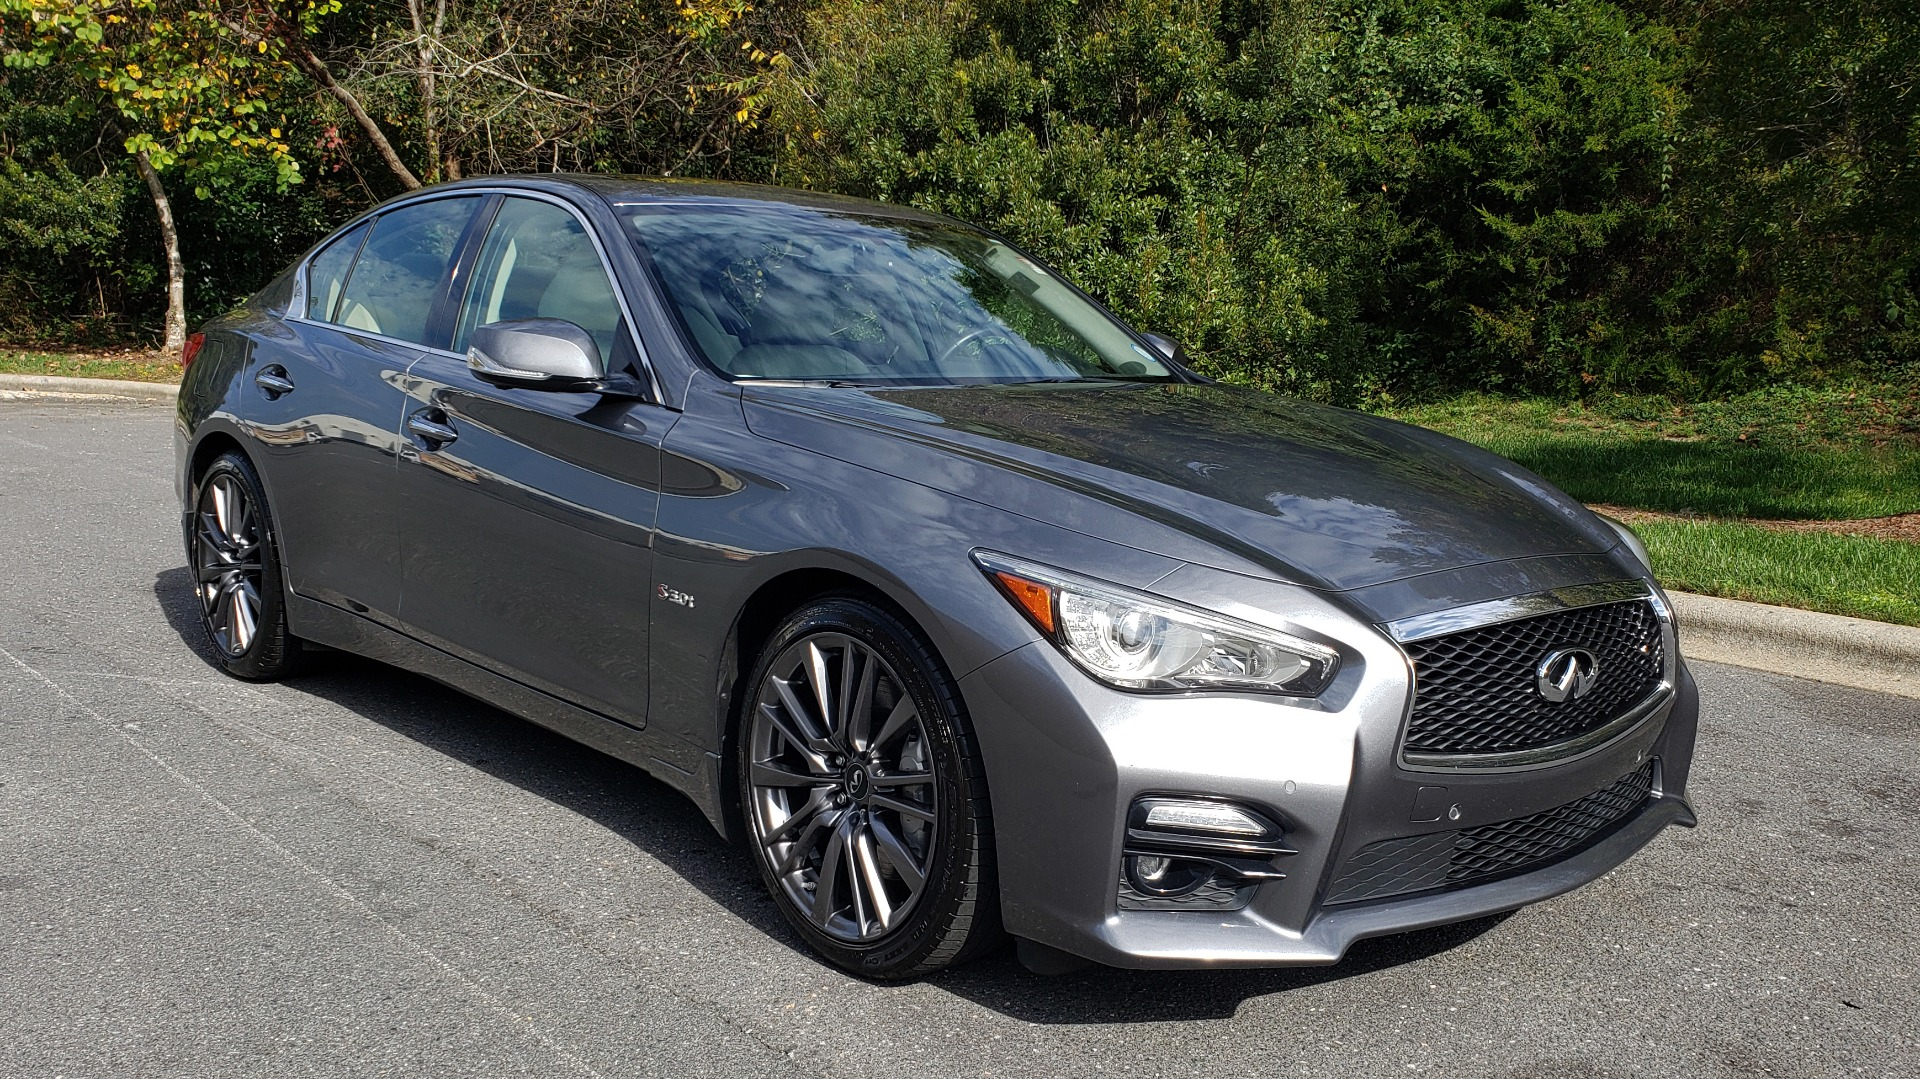 Used 2016 INFINITI Q50 3.0T RED SPORT 400 / NAV / PREM PLUS / BLIND SPOT / REARVIEW for sale $28,495 at Formula Imports in Charlotte NC 28227 4